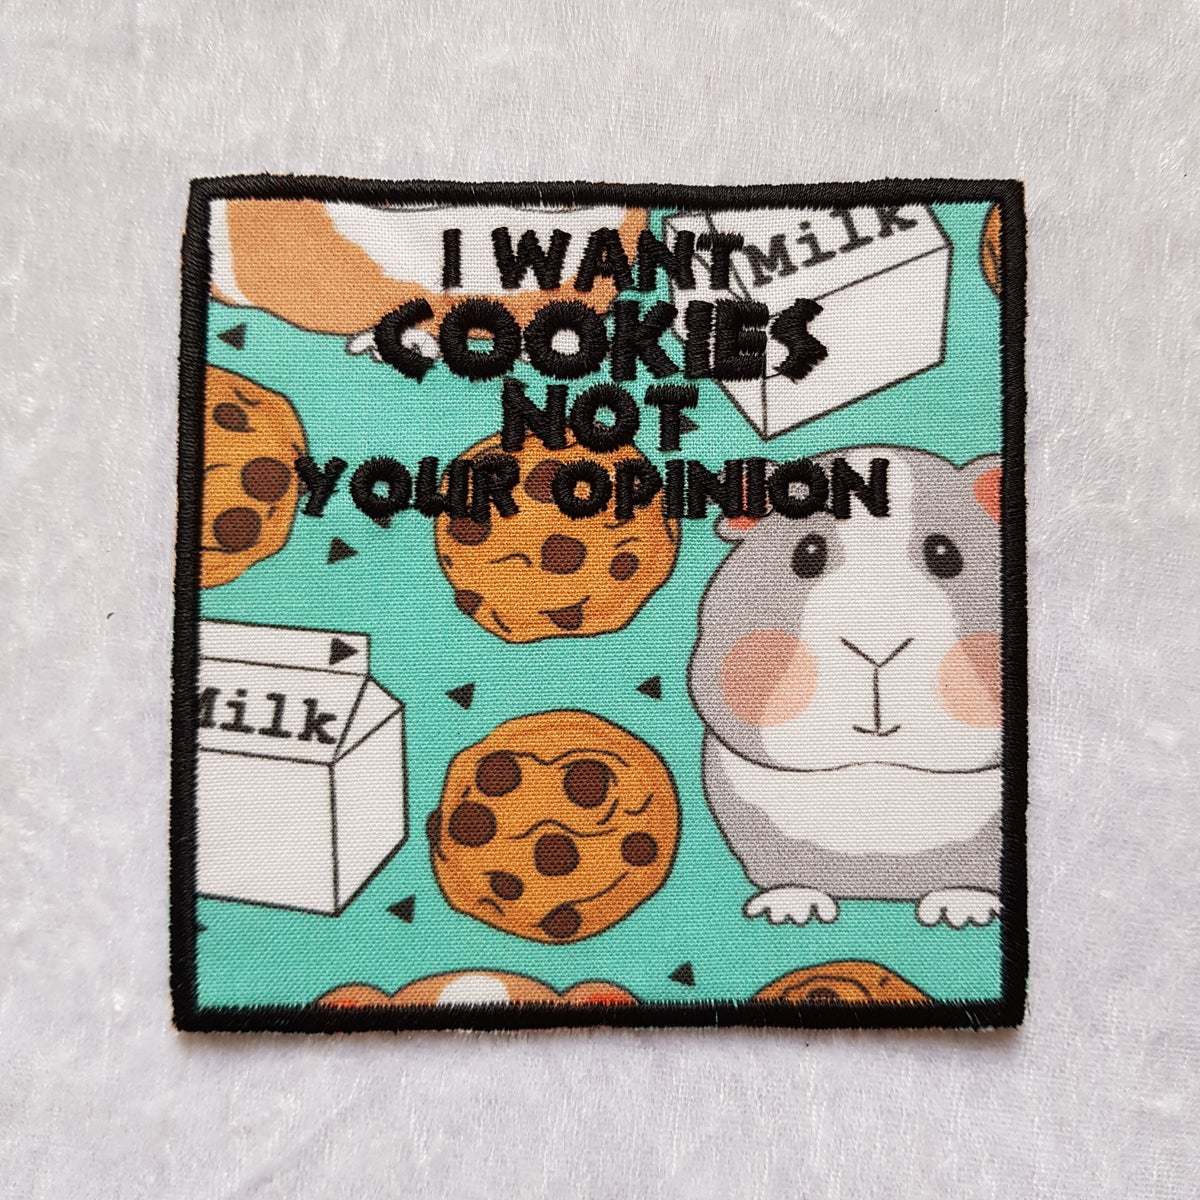 🐹 Patchs Don't want your opinion COOKIES 🐹